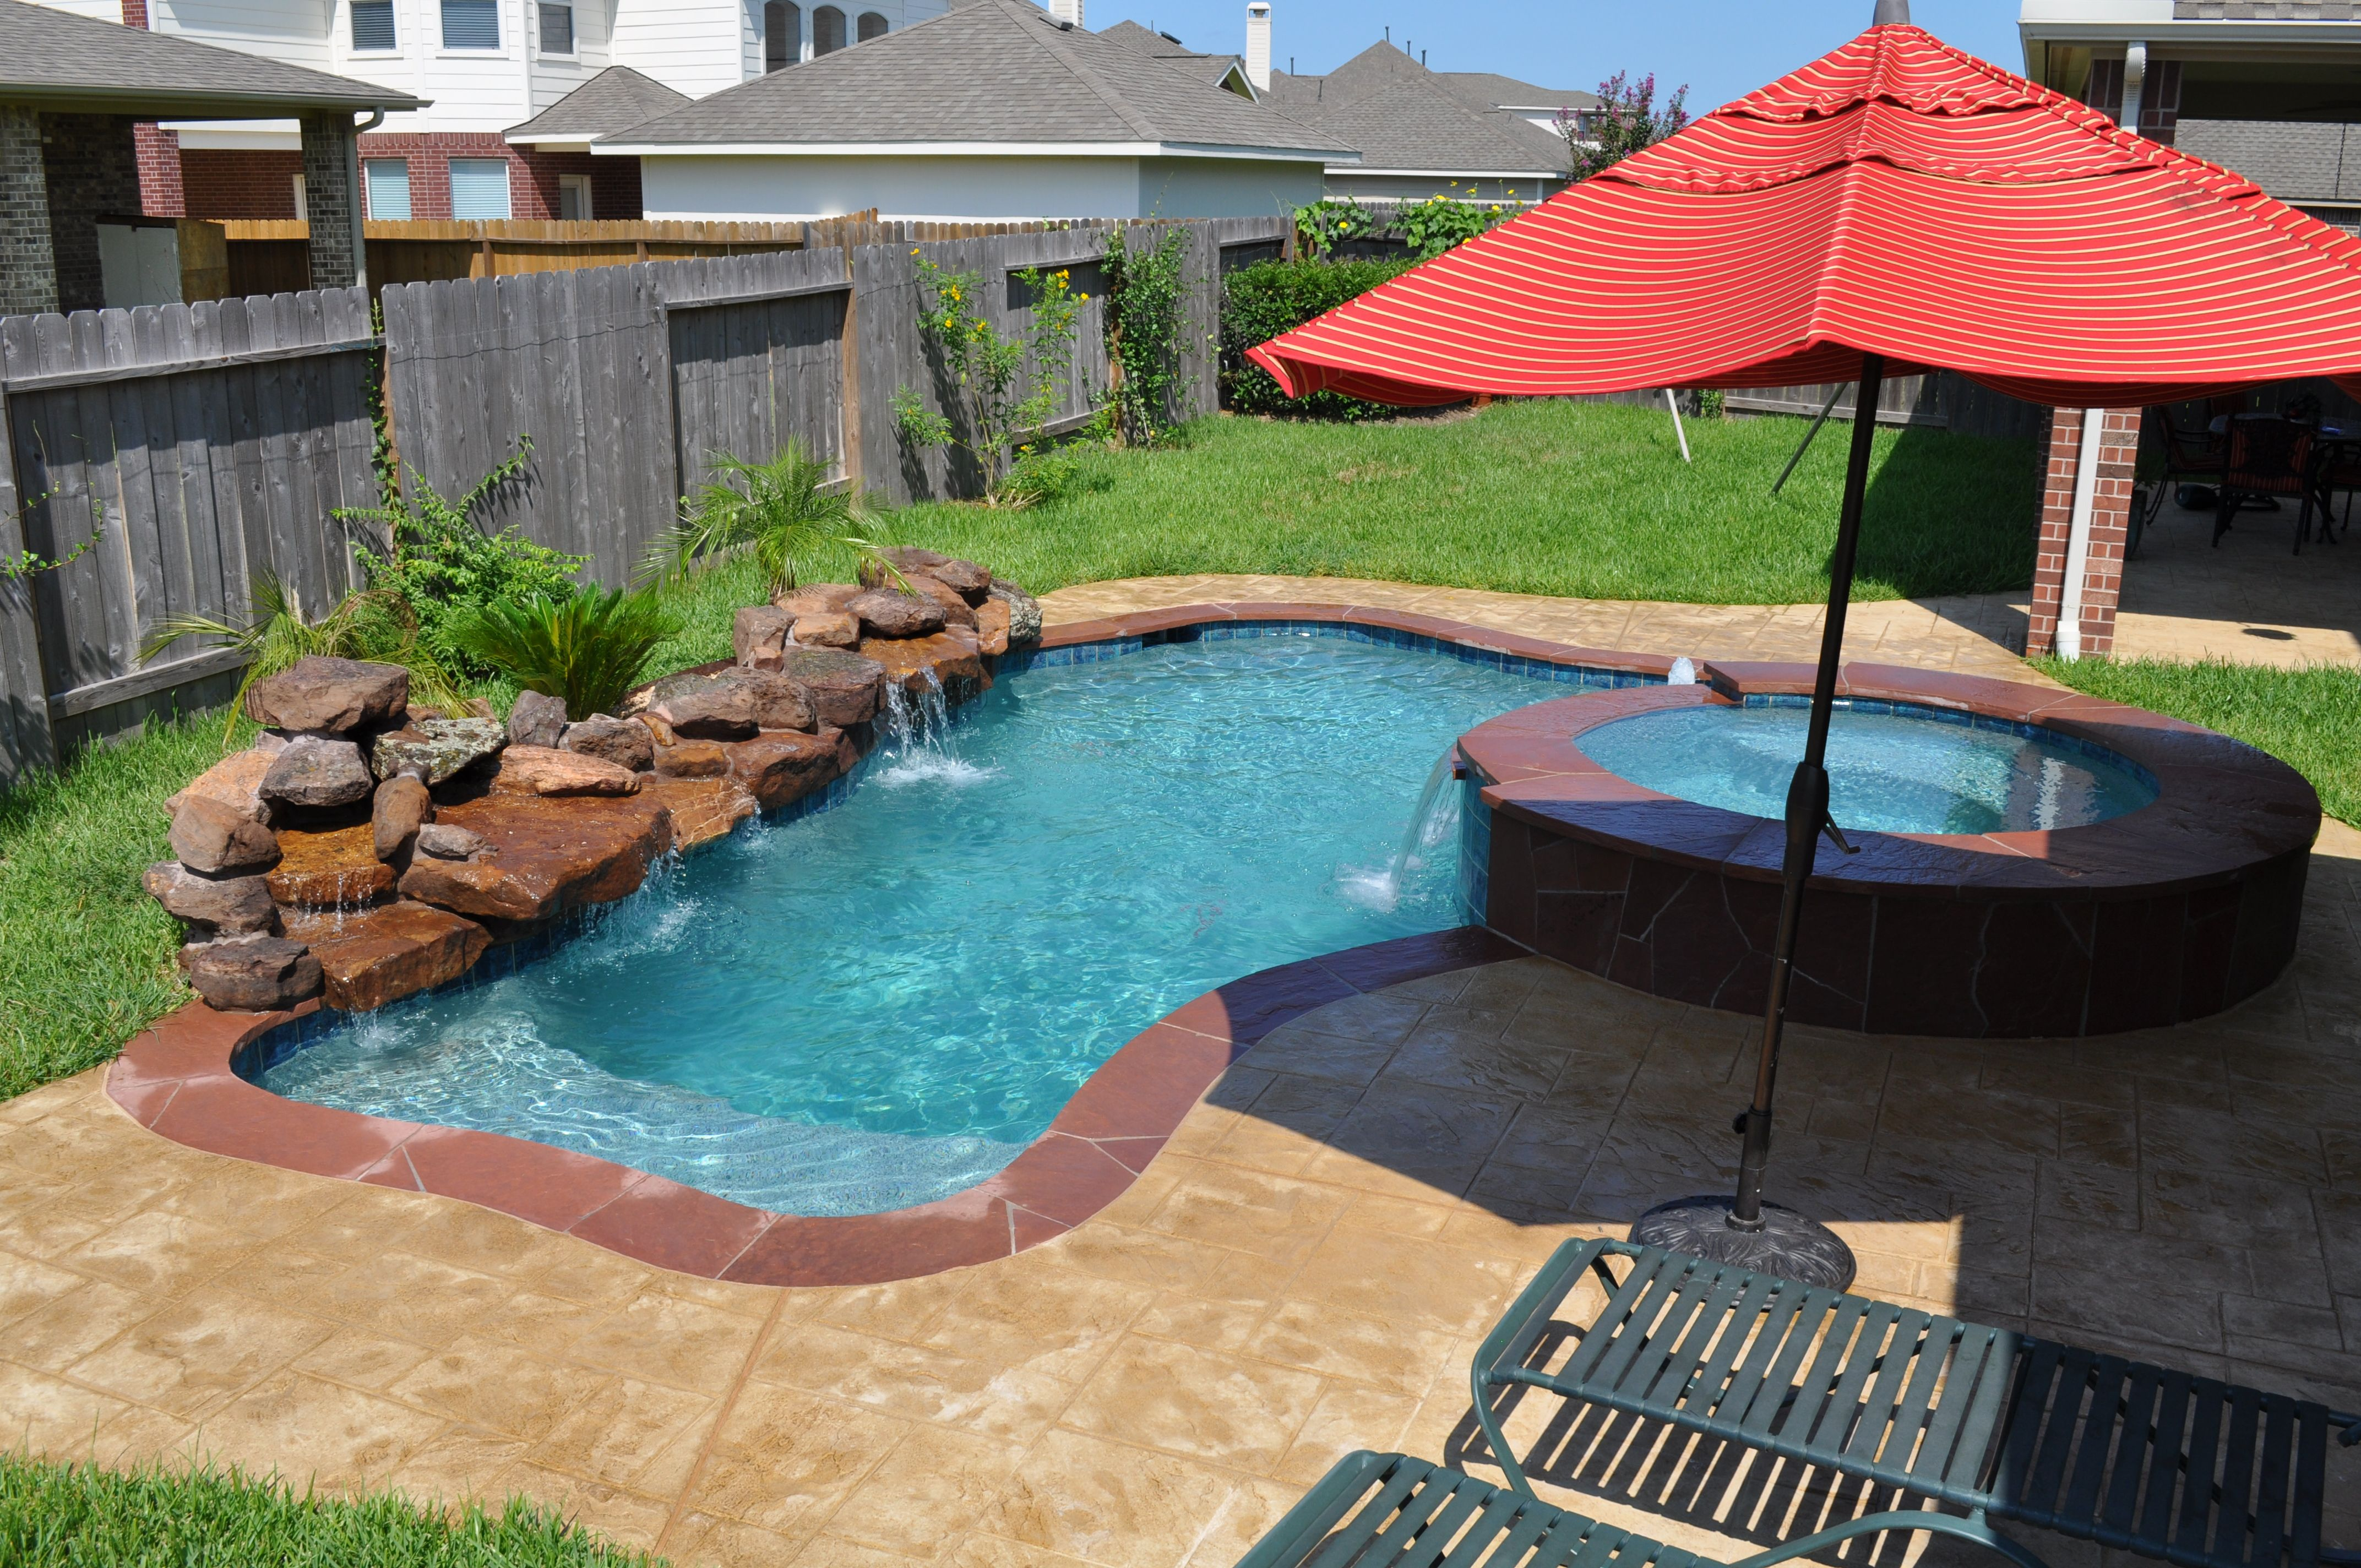 This Small Pool And Spa In Katy Tx Houston Tx Features Stamped